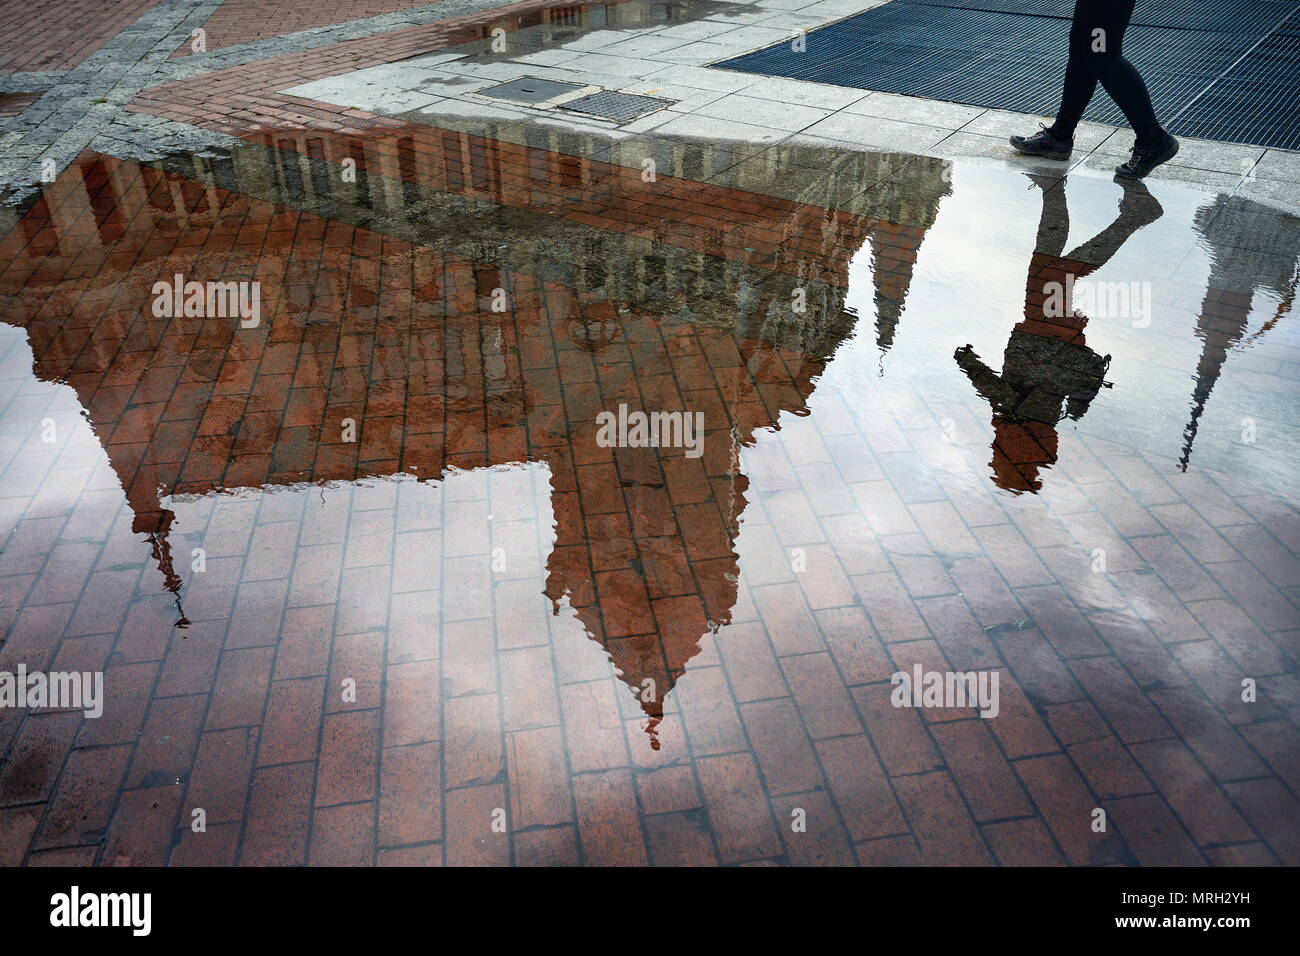 Woman reflection in puddle at Europe Square in Batumi - Stock Image